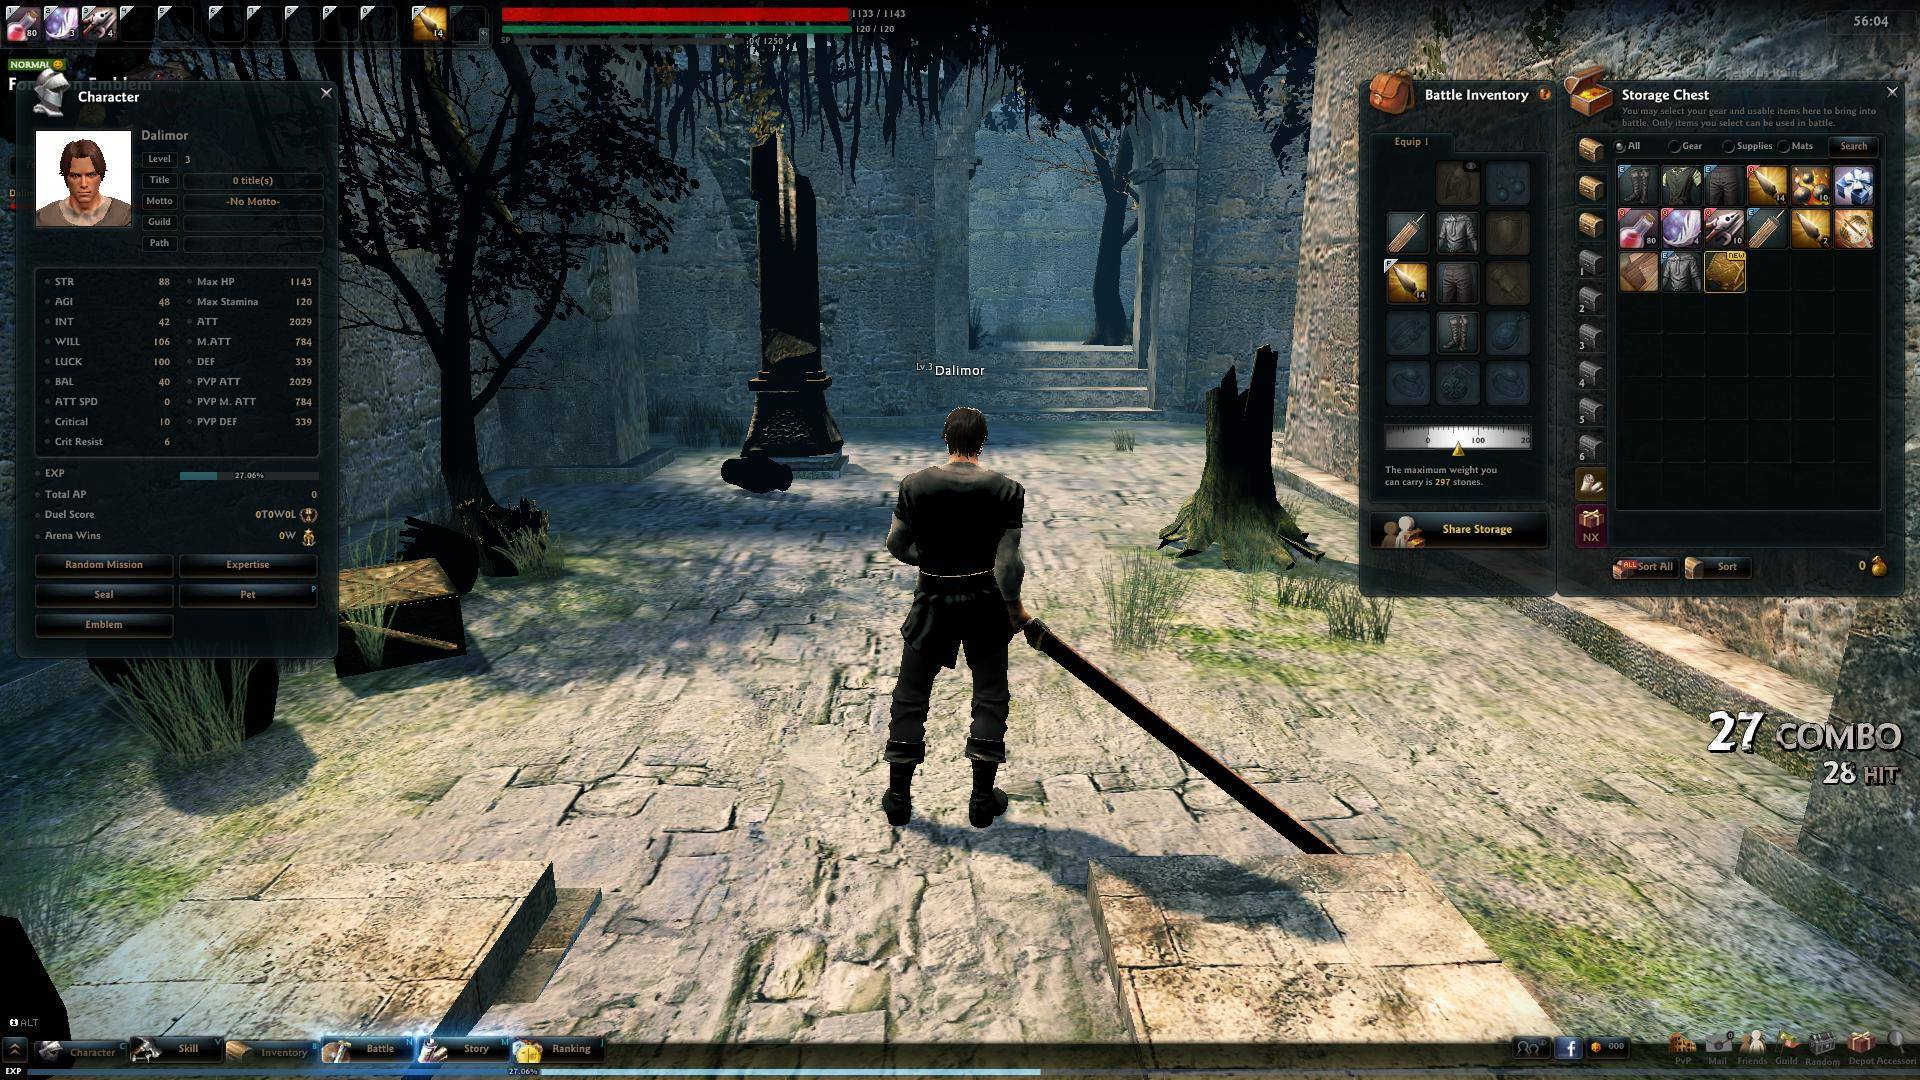 Mmo Games For Free : Vindictus review best mmorpg